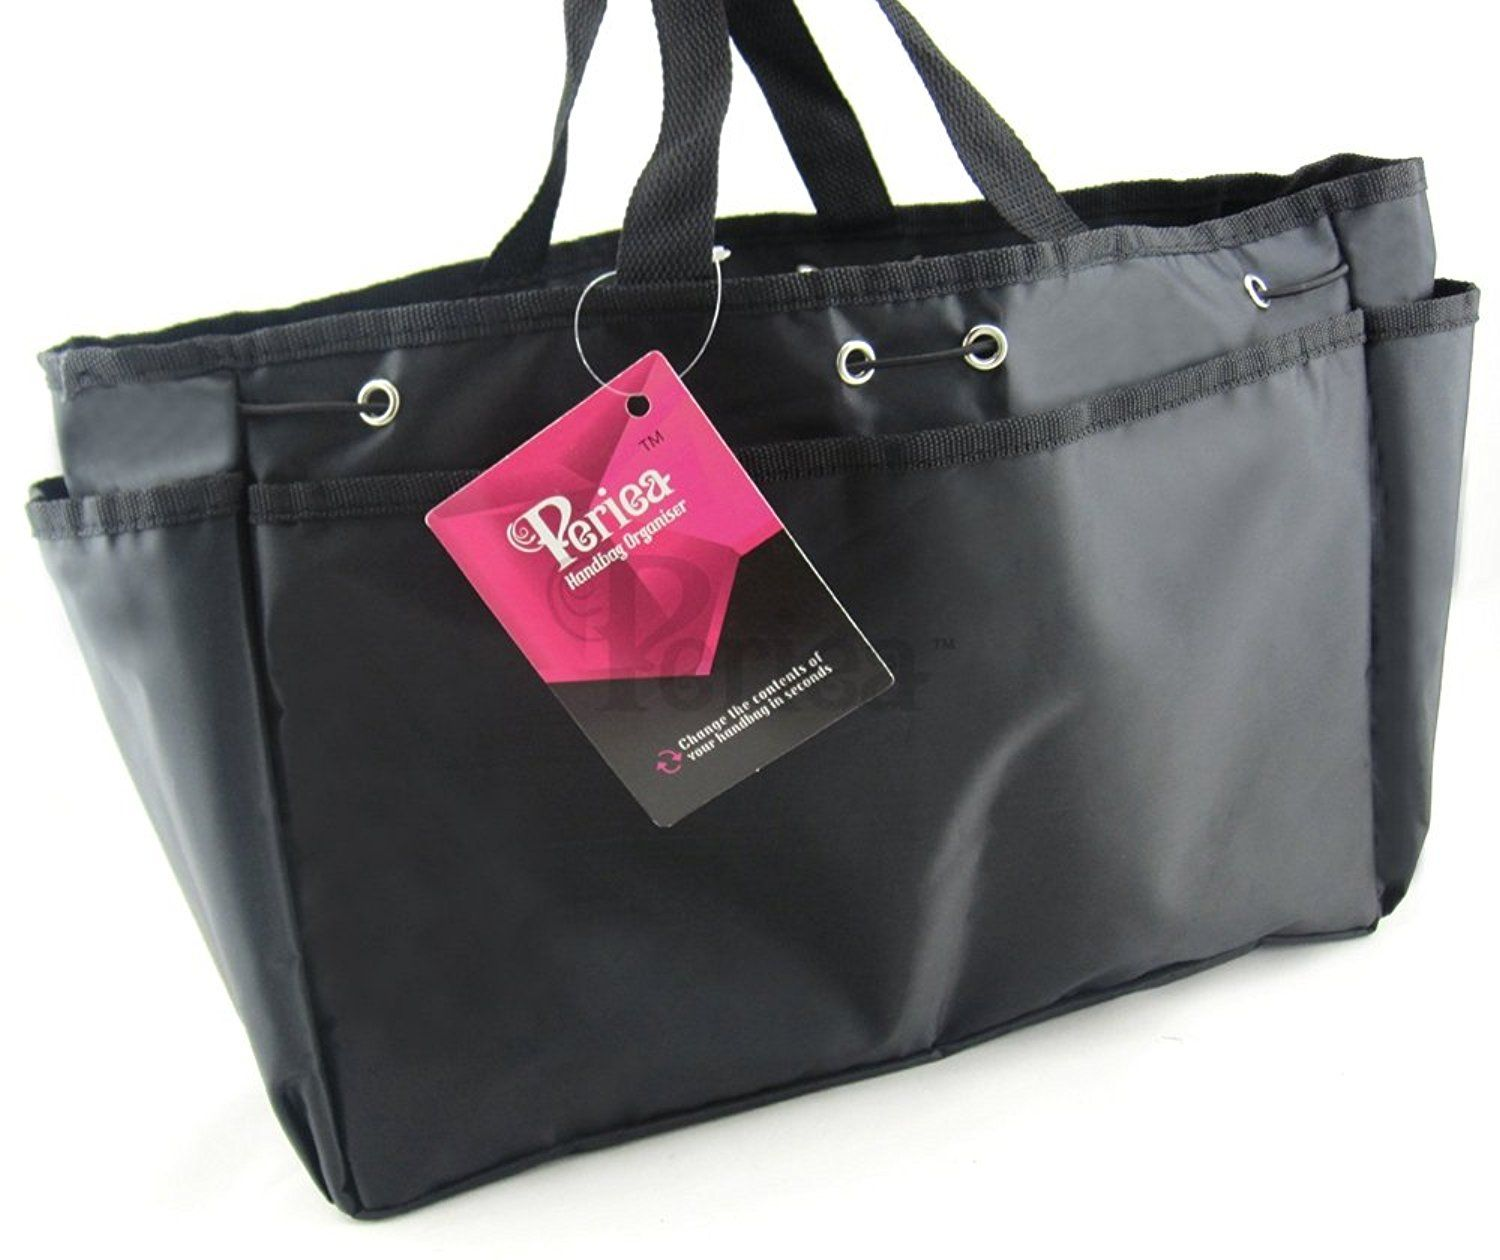 Periea Handbag Organiser Extra Large Black Bertha If You Love This Read Review Now Best Travel Accessories For Women